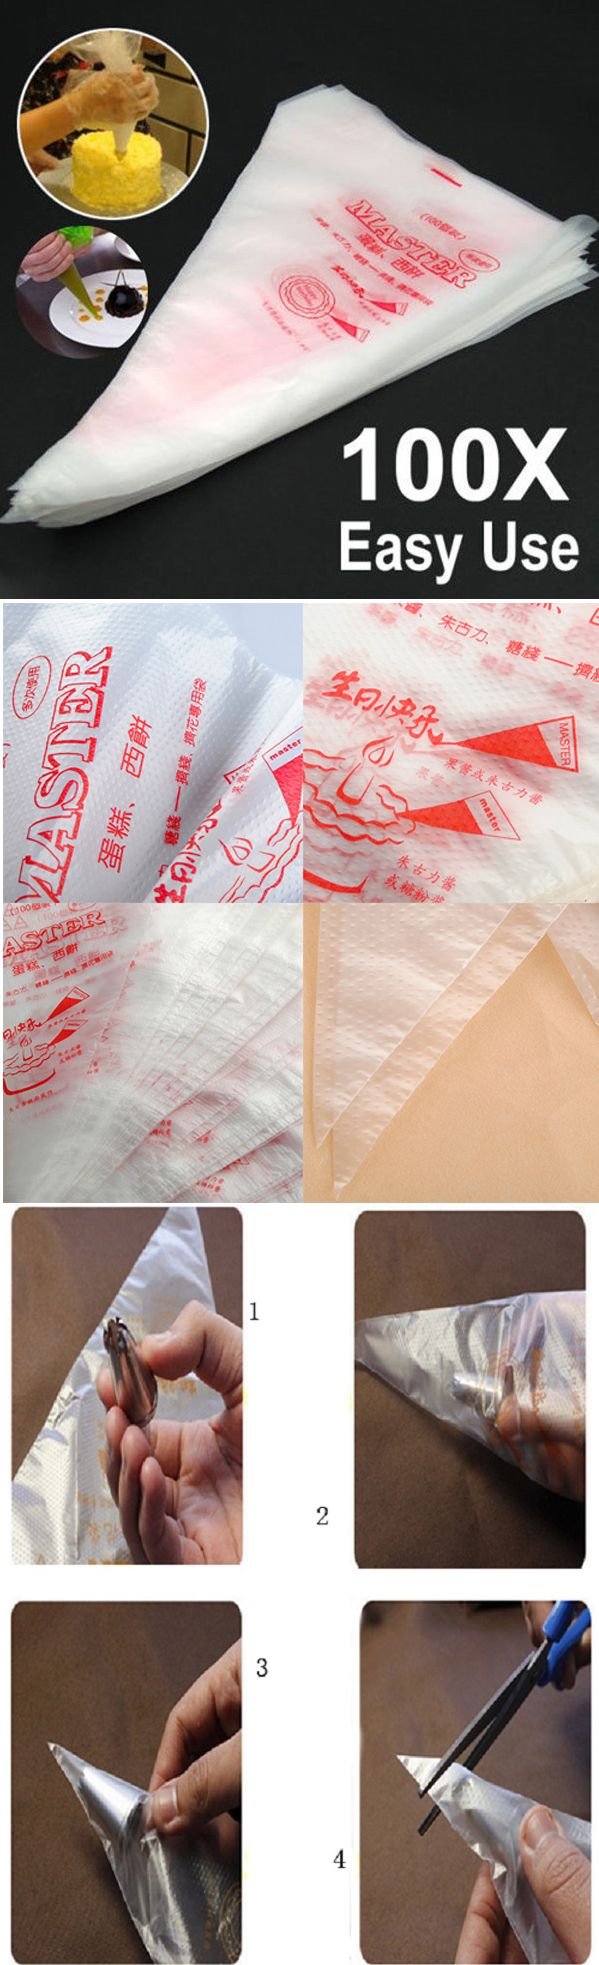 US$4.59 100pcs Disposable Cream Pastry Cake Icing Piping Decorating Bags Cake Decorating Tool